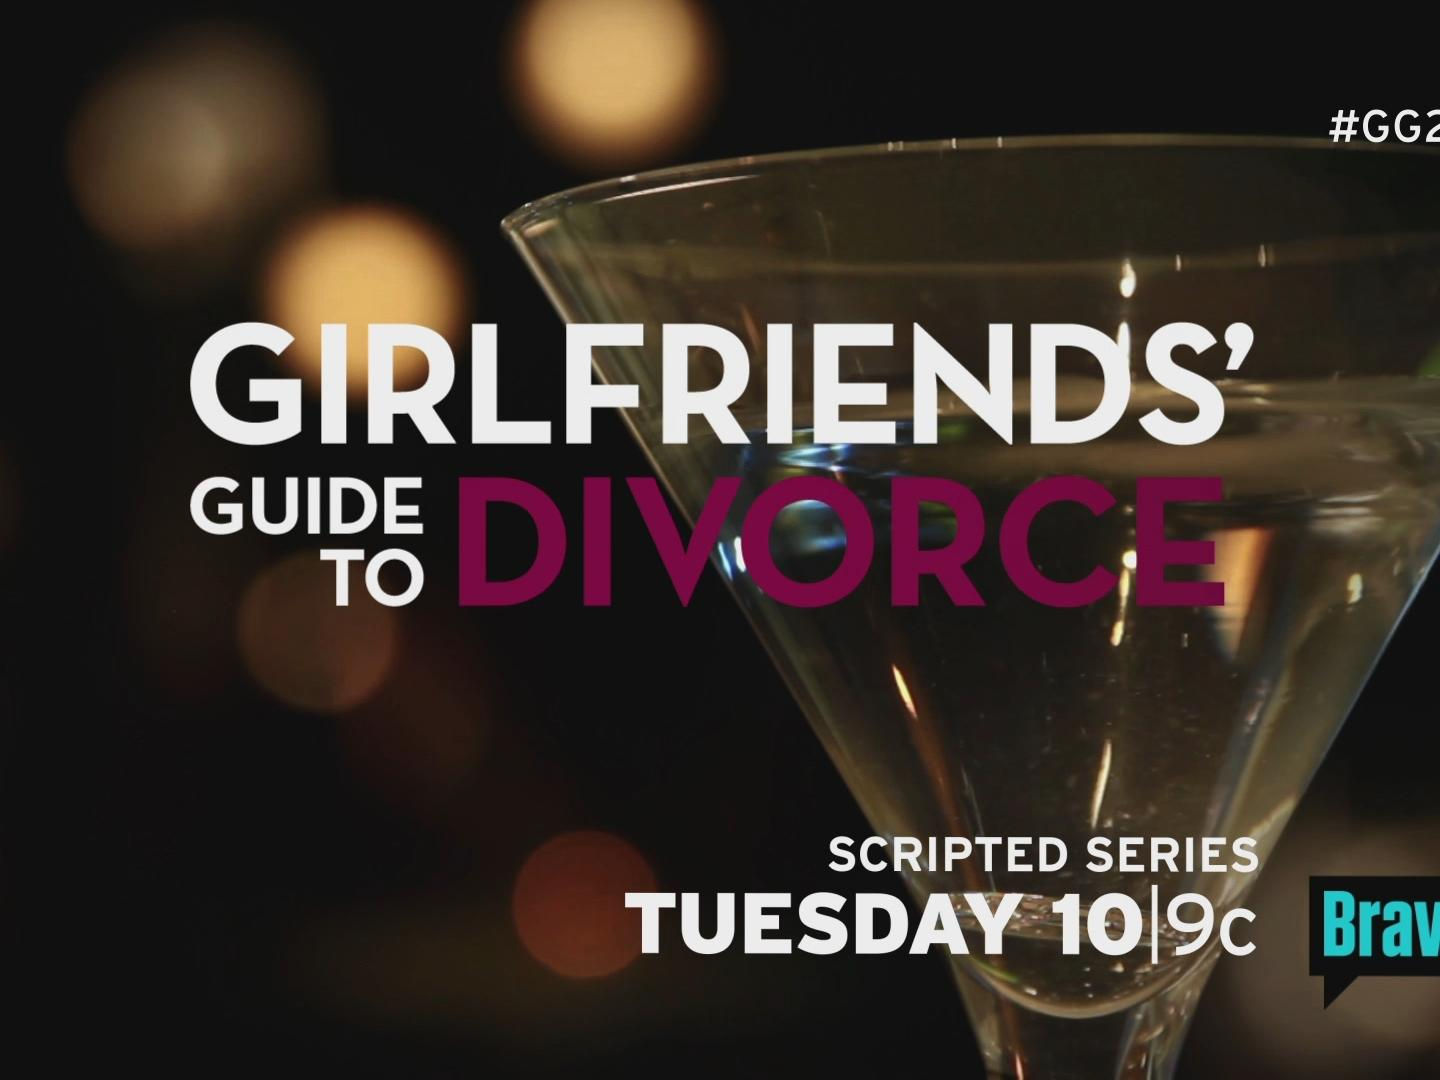 Image for Girlfriends' Guide to Divorce Launch/Script :30